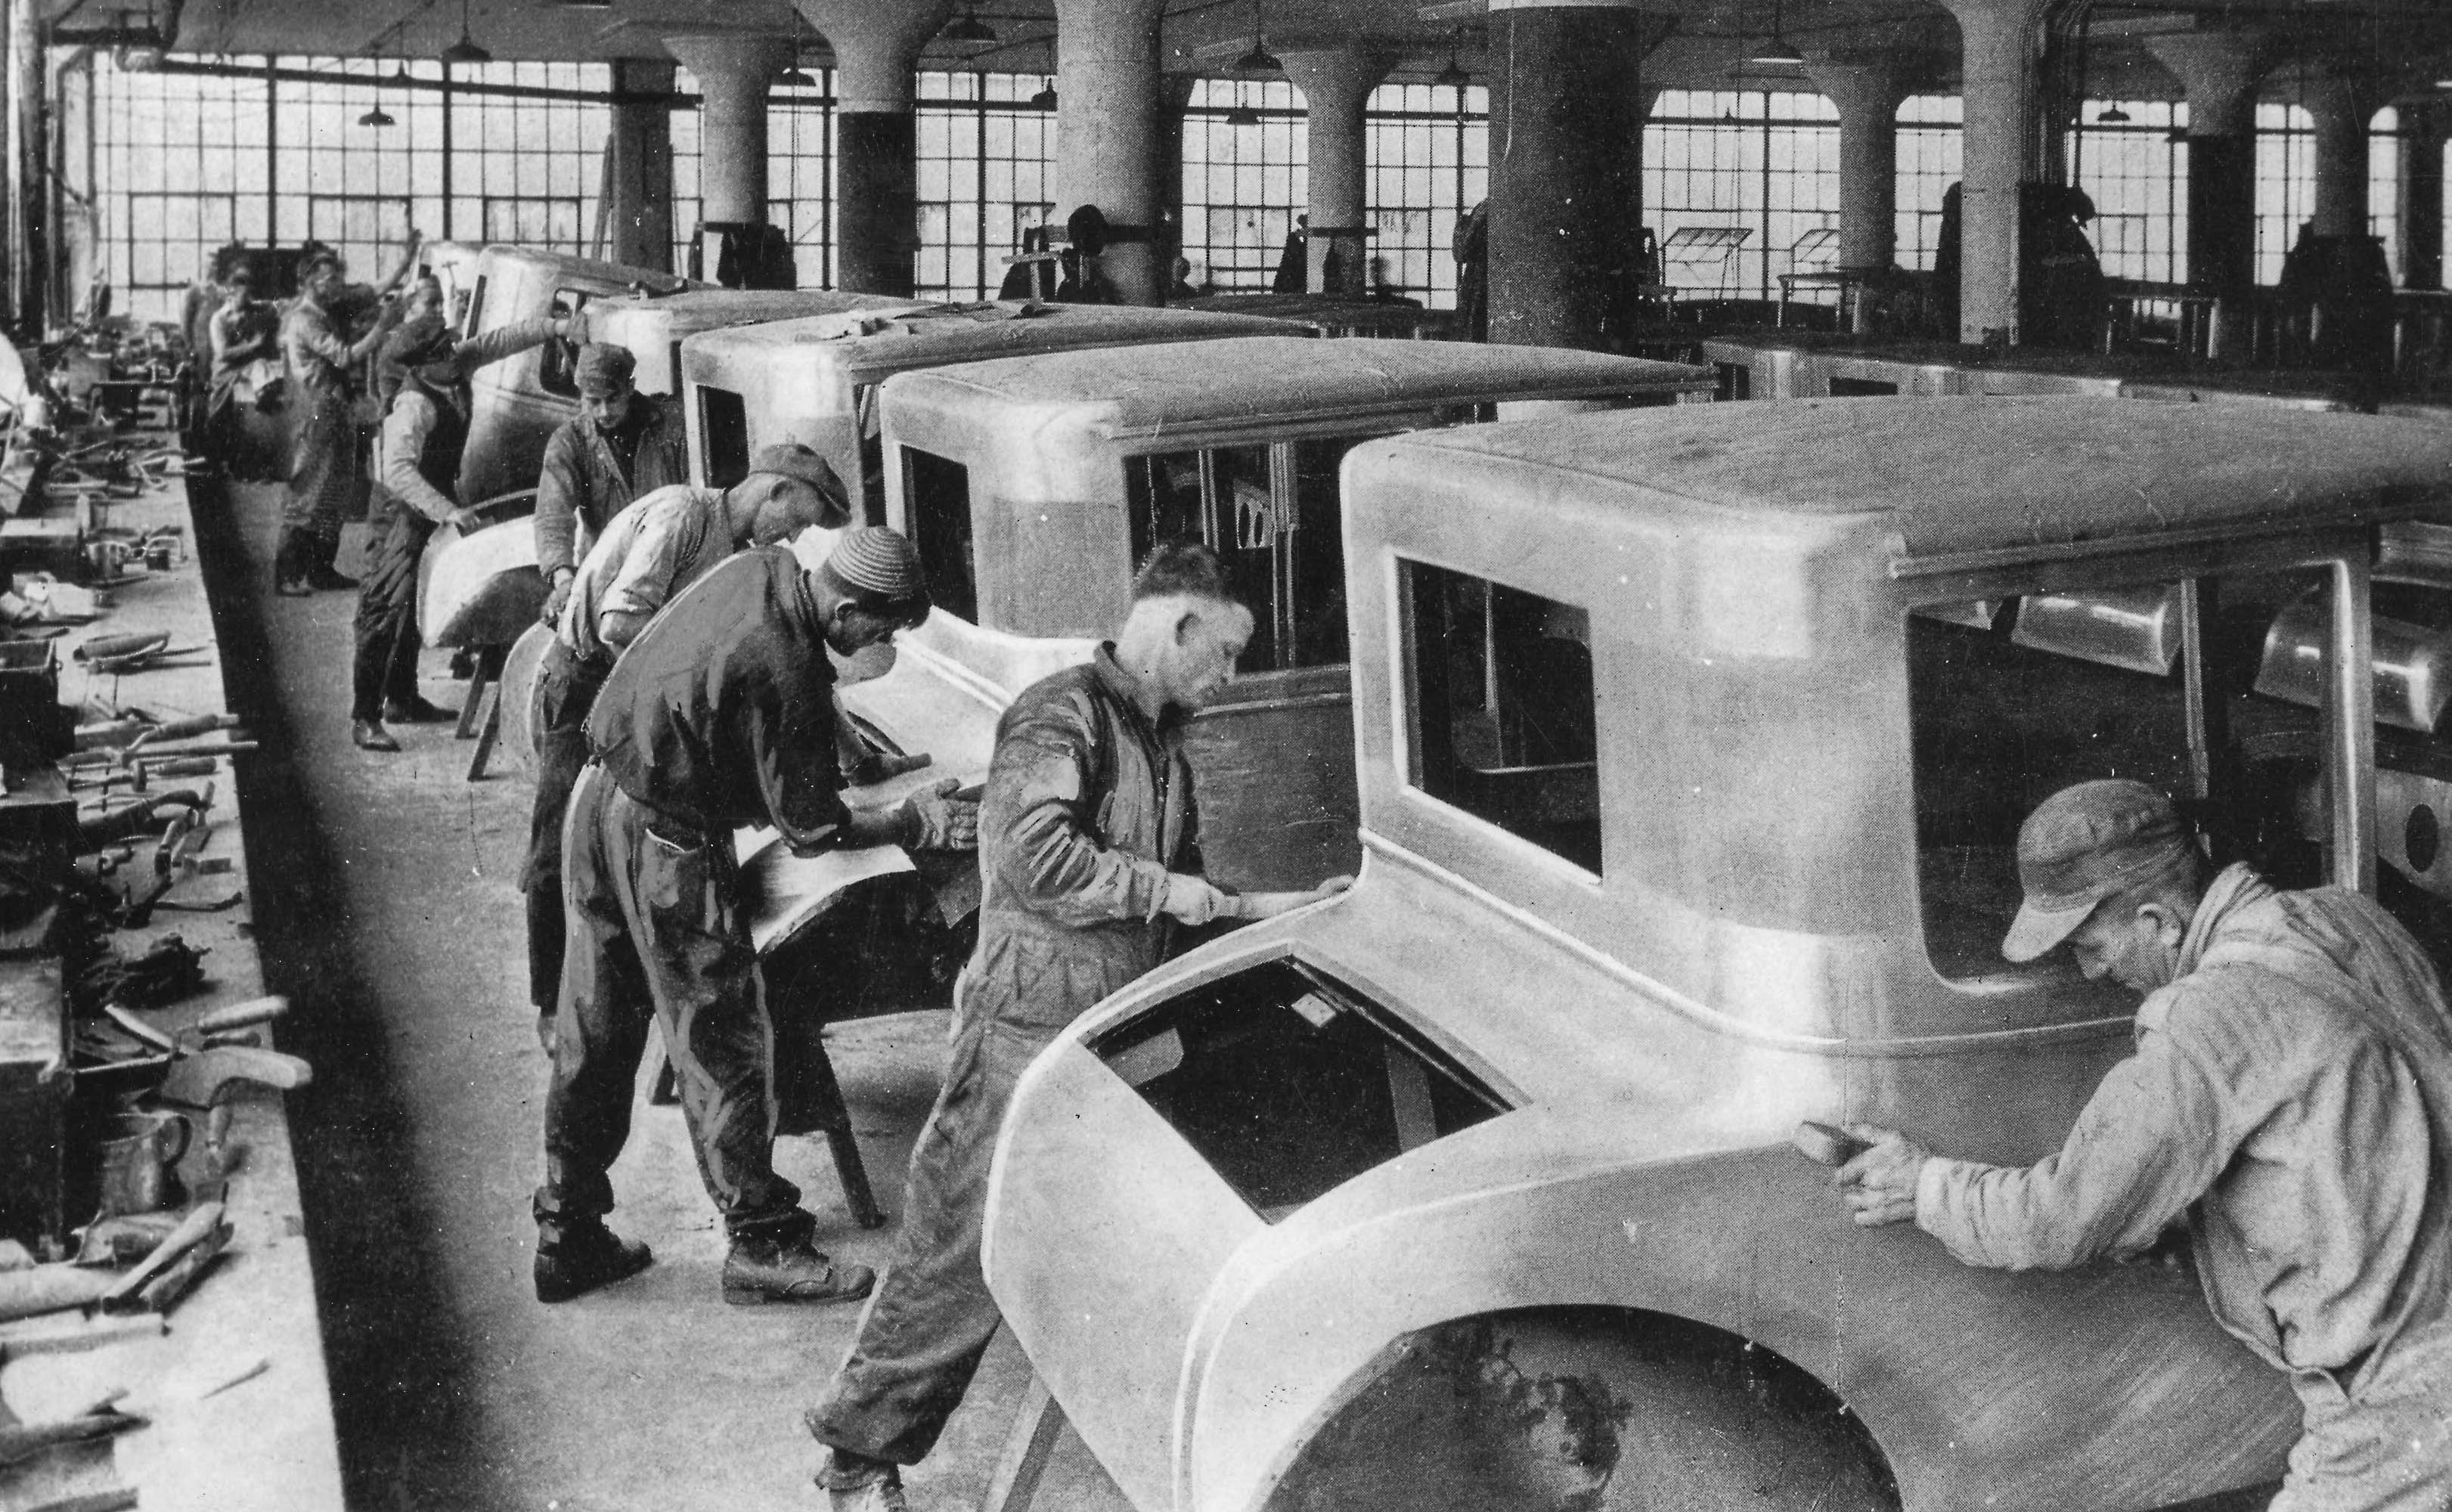 Classic Collection. Page: 44. 10385107. Detroit, Michigan, USA. circa 1927. A group of men working on an assembly line of car bodies at the Ford motor plant in Detroit